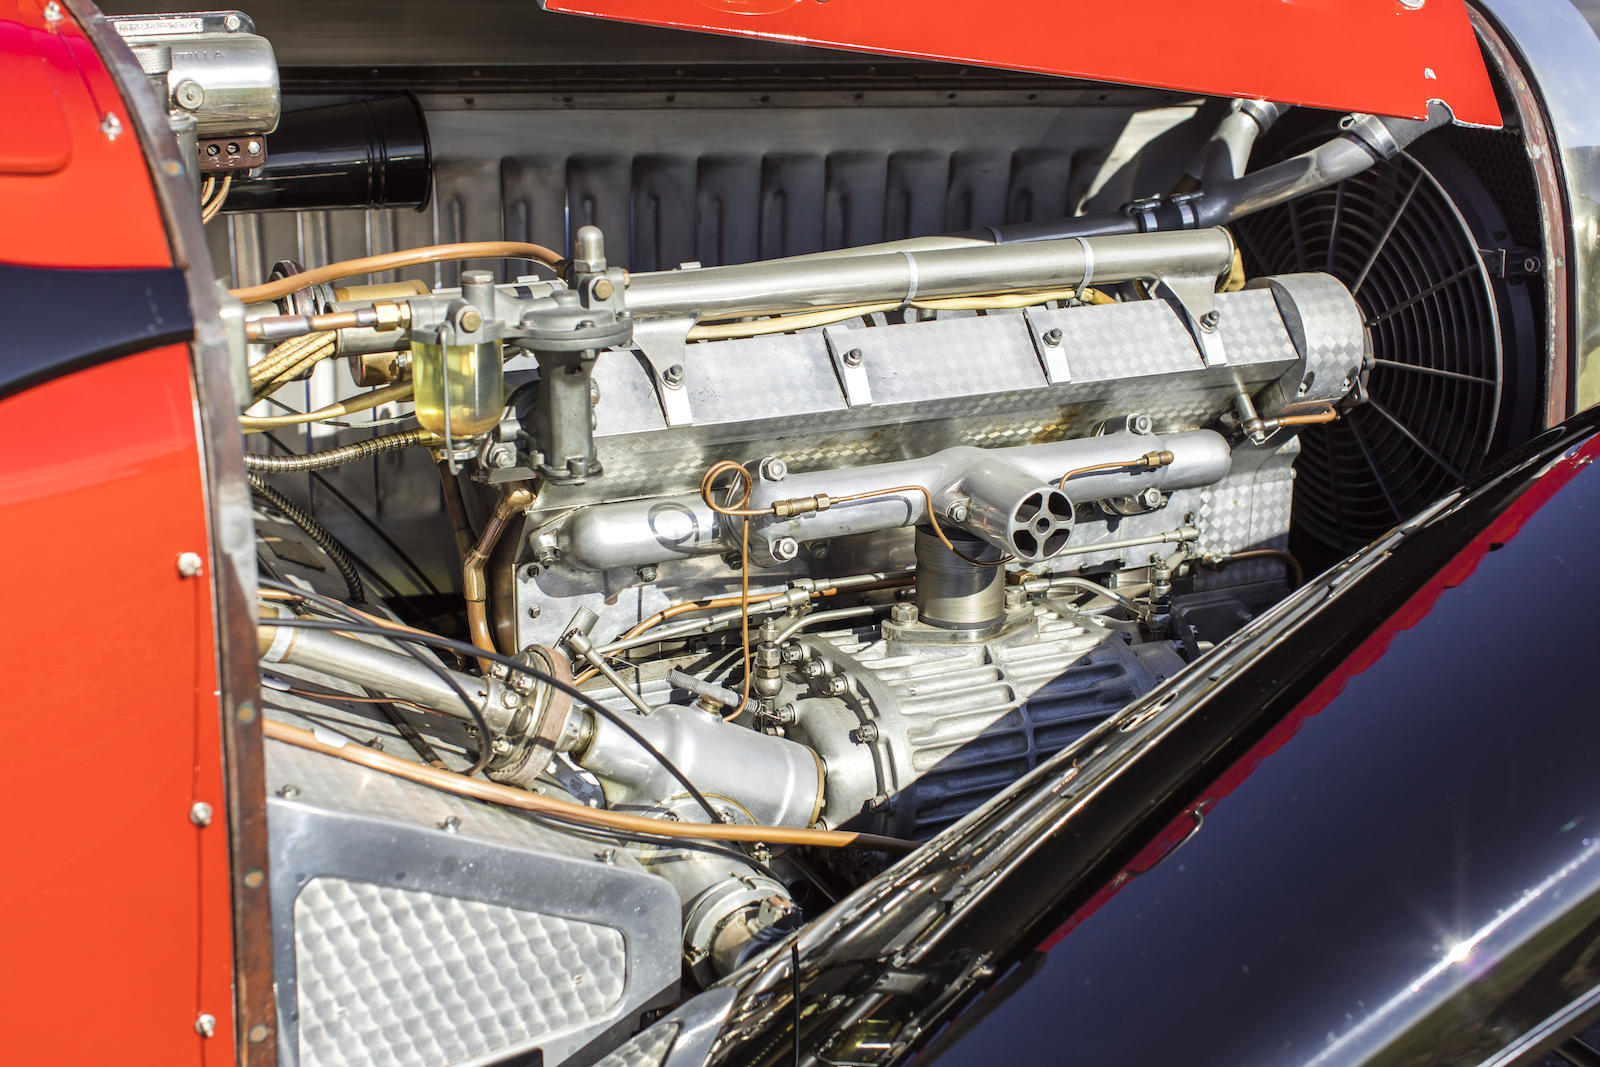 1932 Bugatti Type 55 SS Roadster engine bay